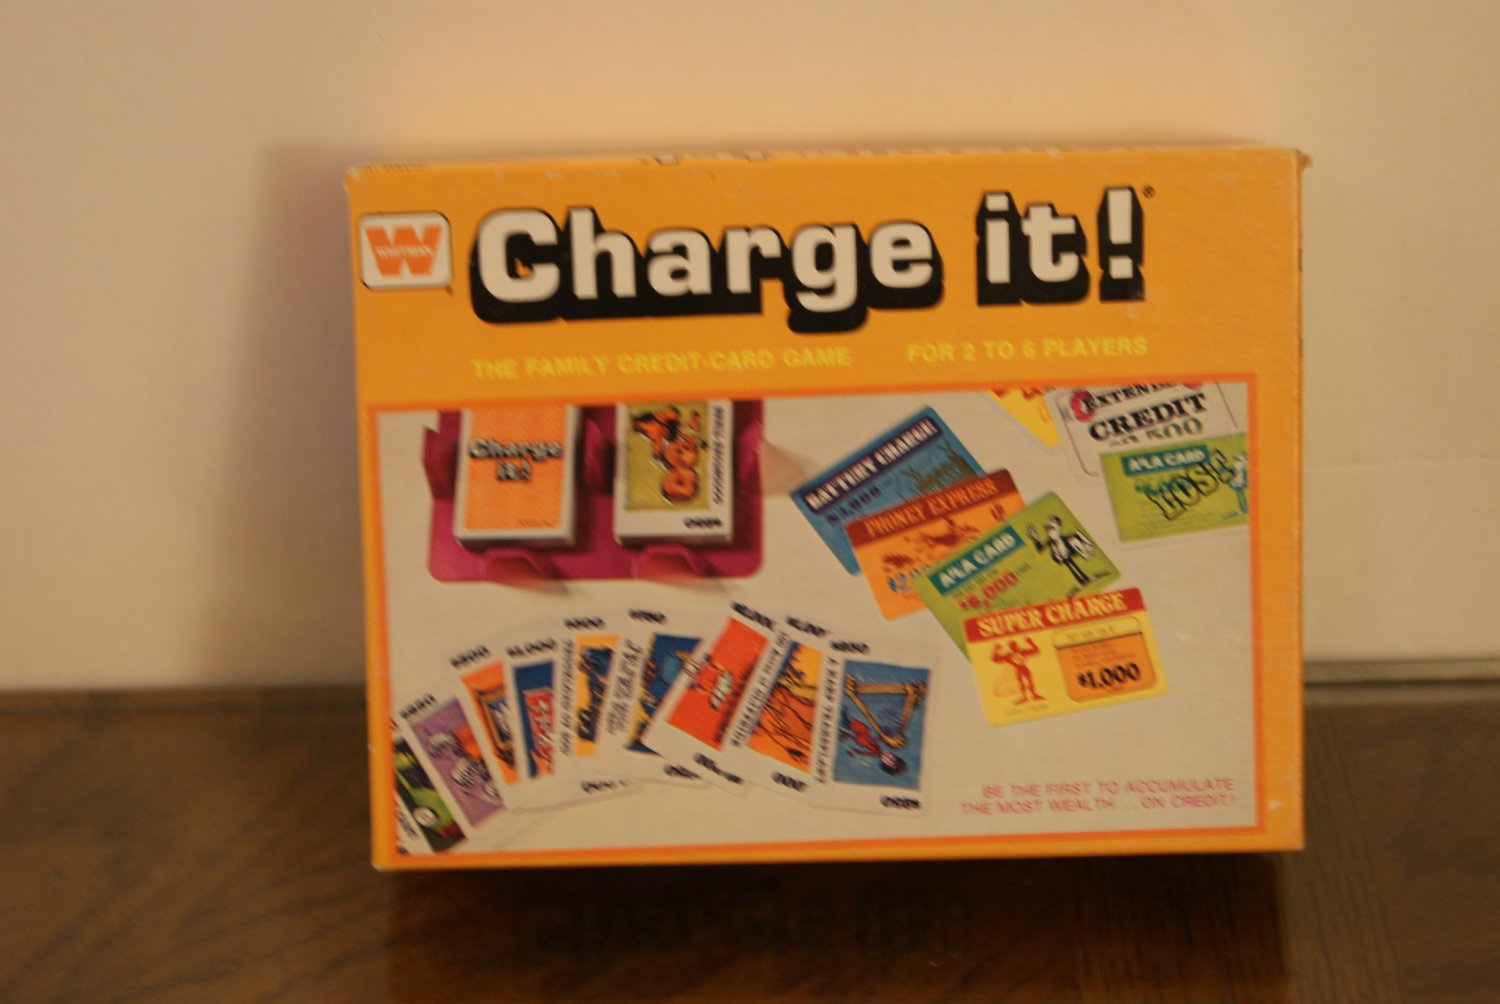 Charge it ! game